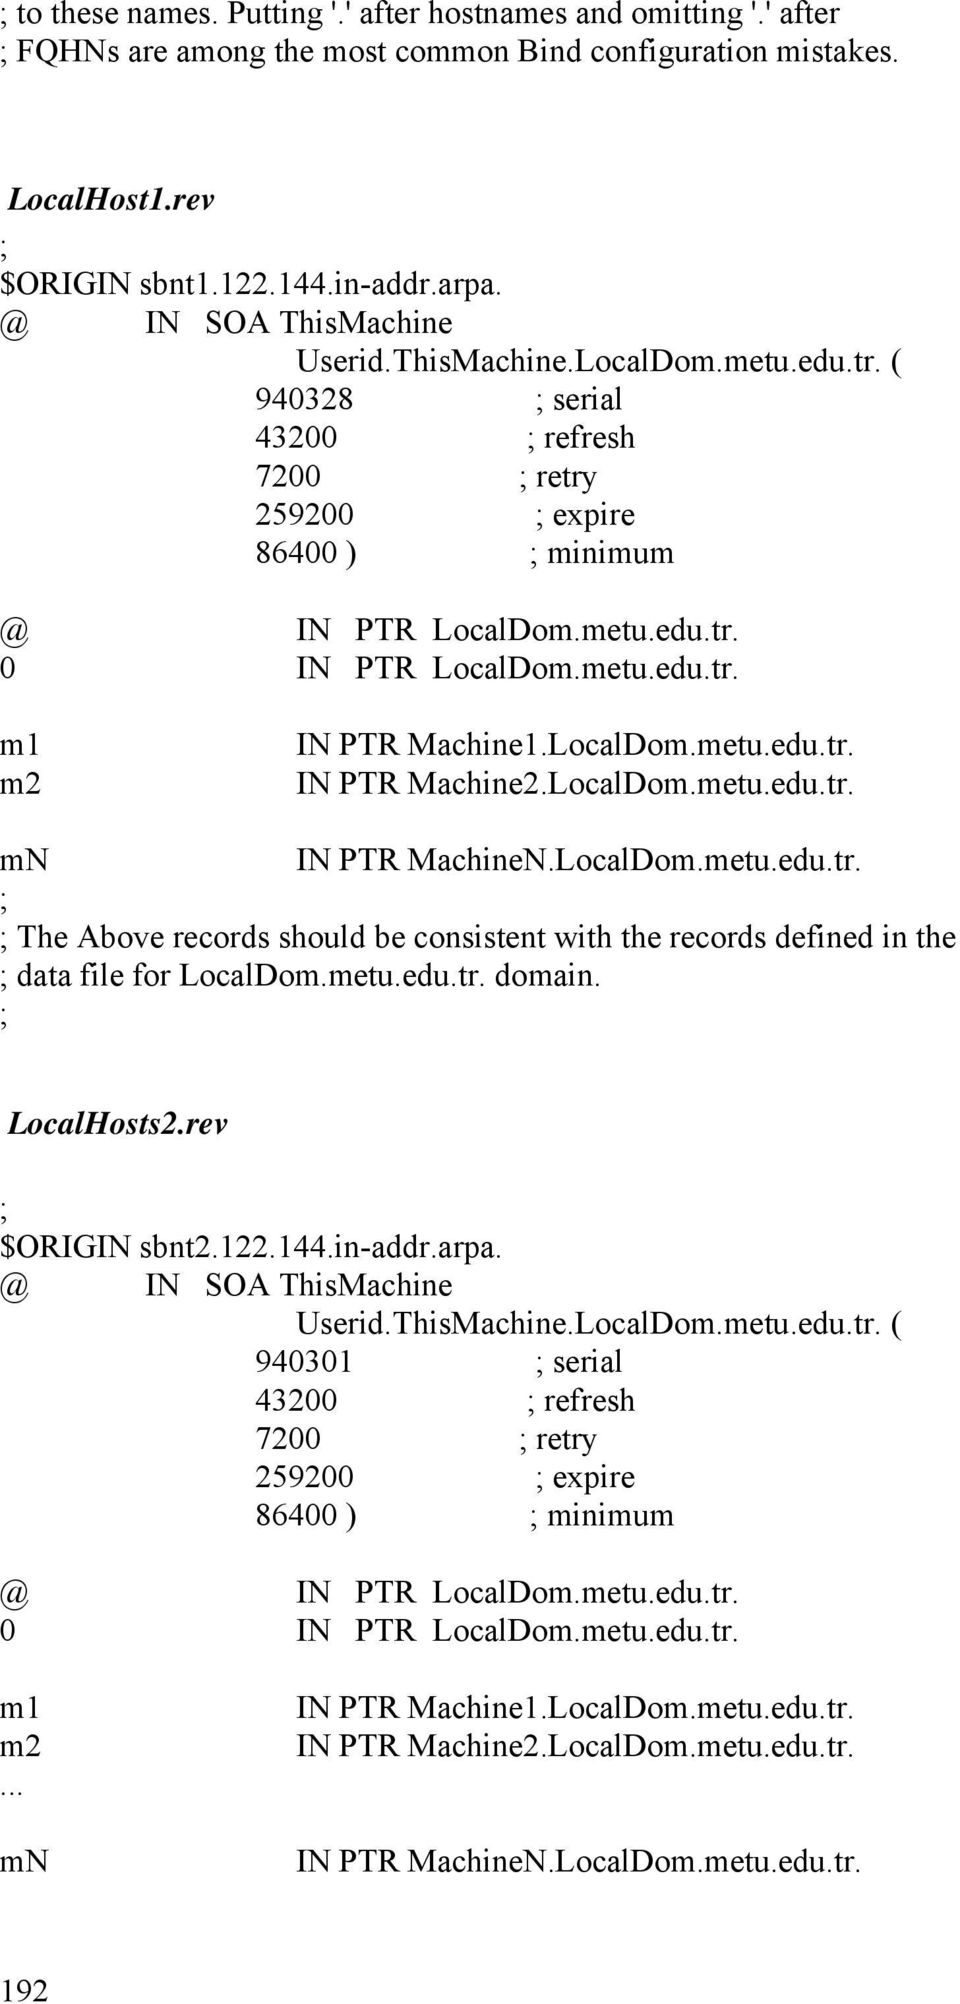 LocalDom.metu.edu.tr. IN PTR Machine2.LocalDom.metu.edu.tr. mn IN PTR MachineN.LocalDom.metu.edu.tr. The Above records should be consistent with the records defined in the data file for LocalDom.metu.edu.tr. domain.